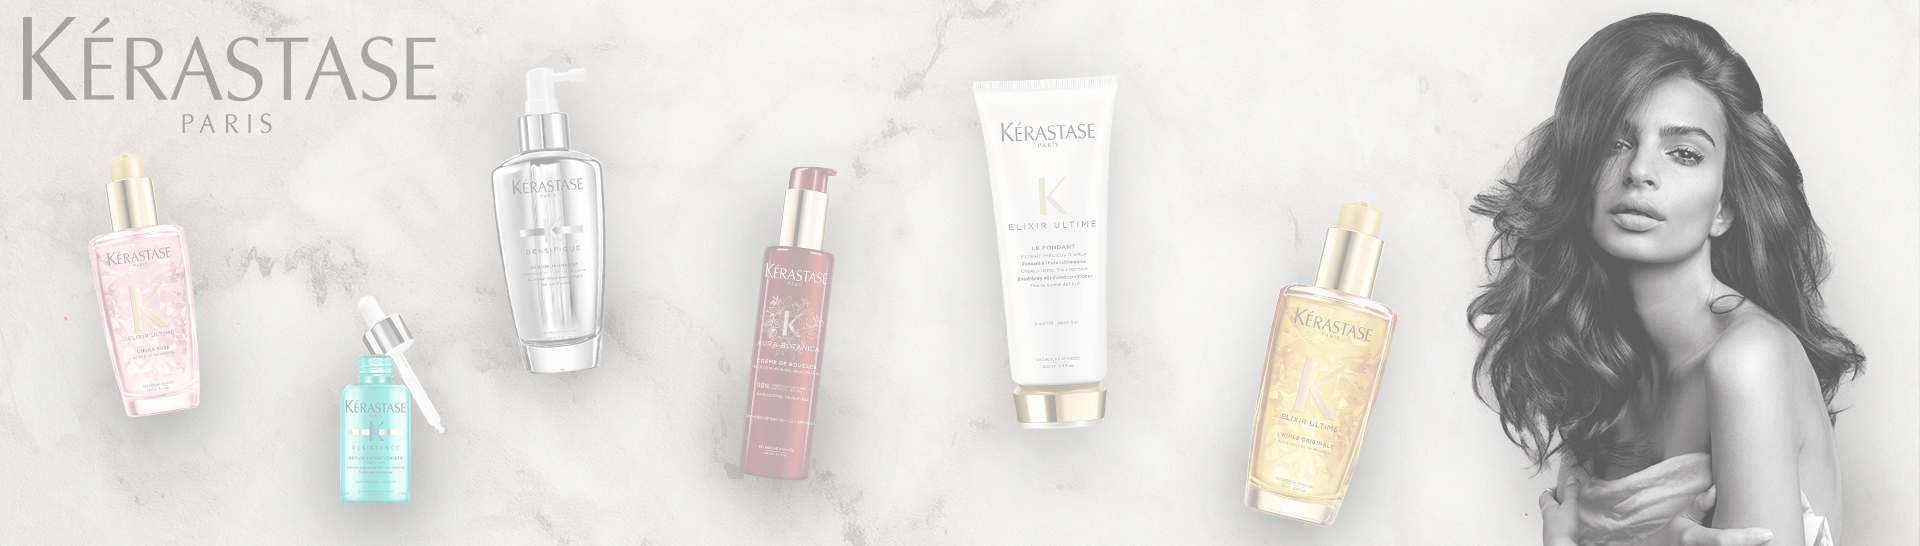 Kérastase premium products